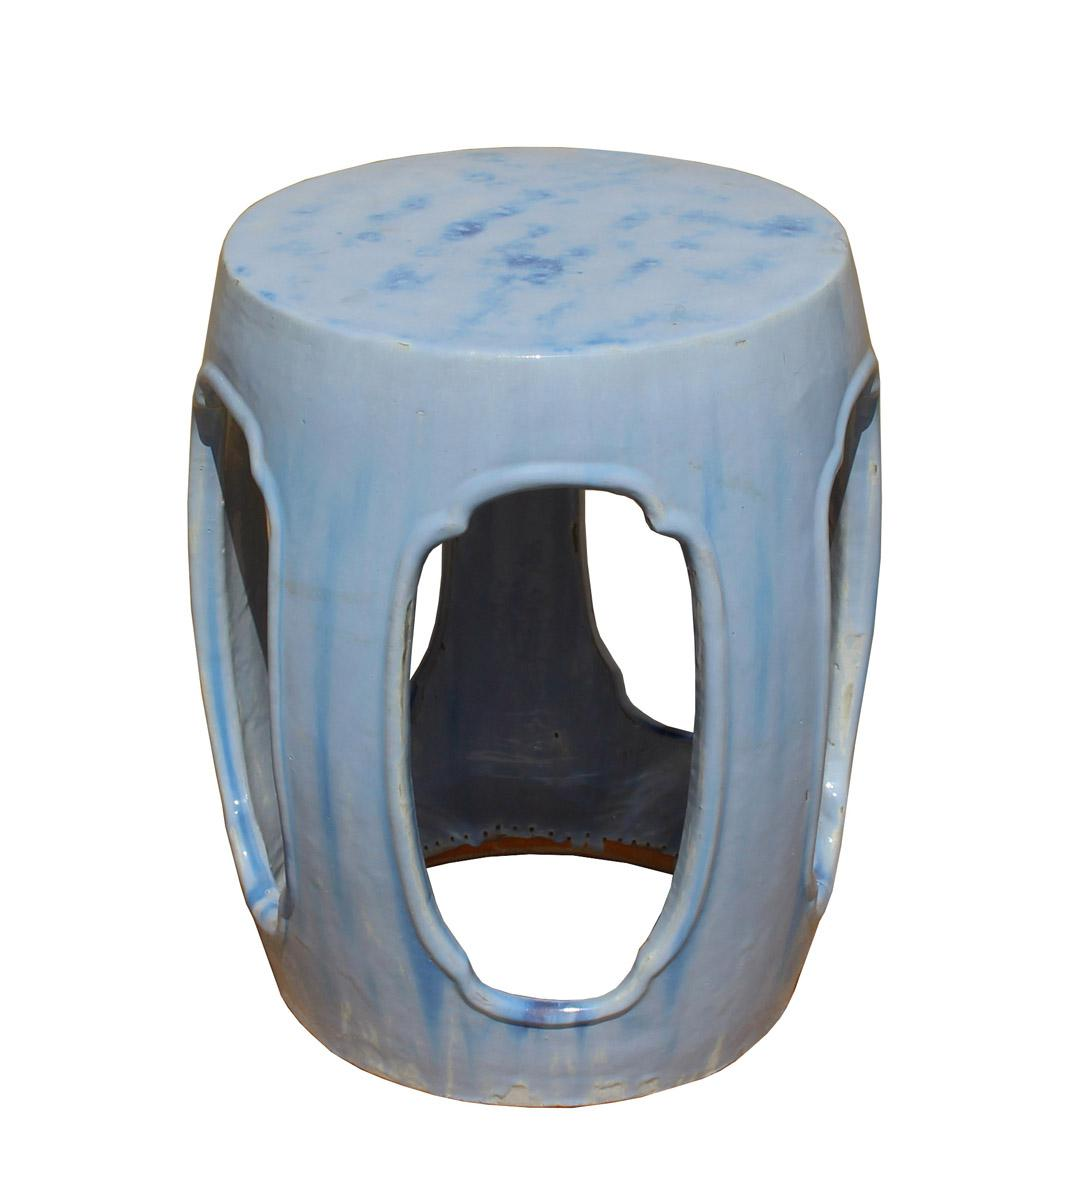 Chinese Round Barrel Light Blue Ceramic Clay Garden Stool   Image 3 Of 7